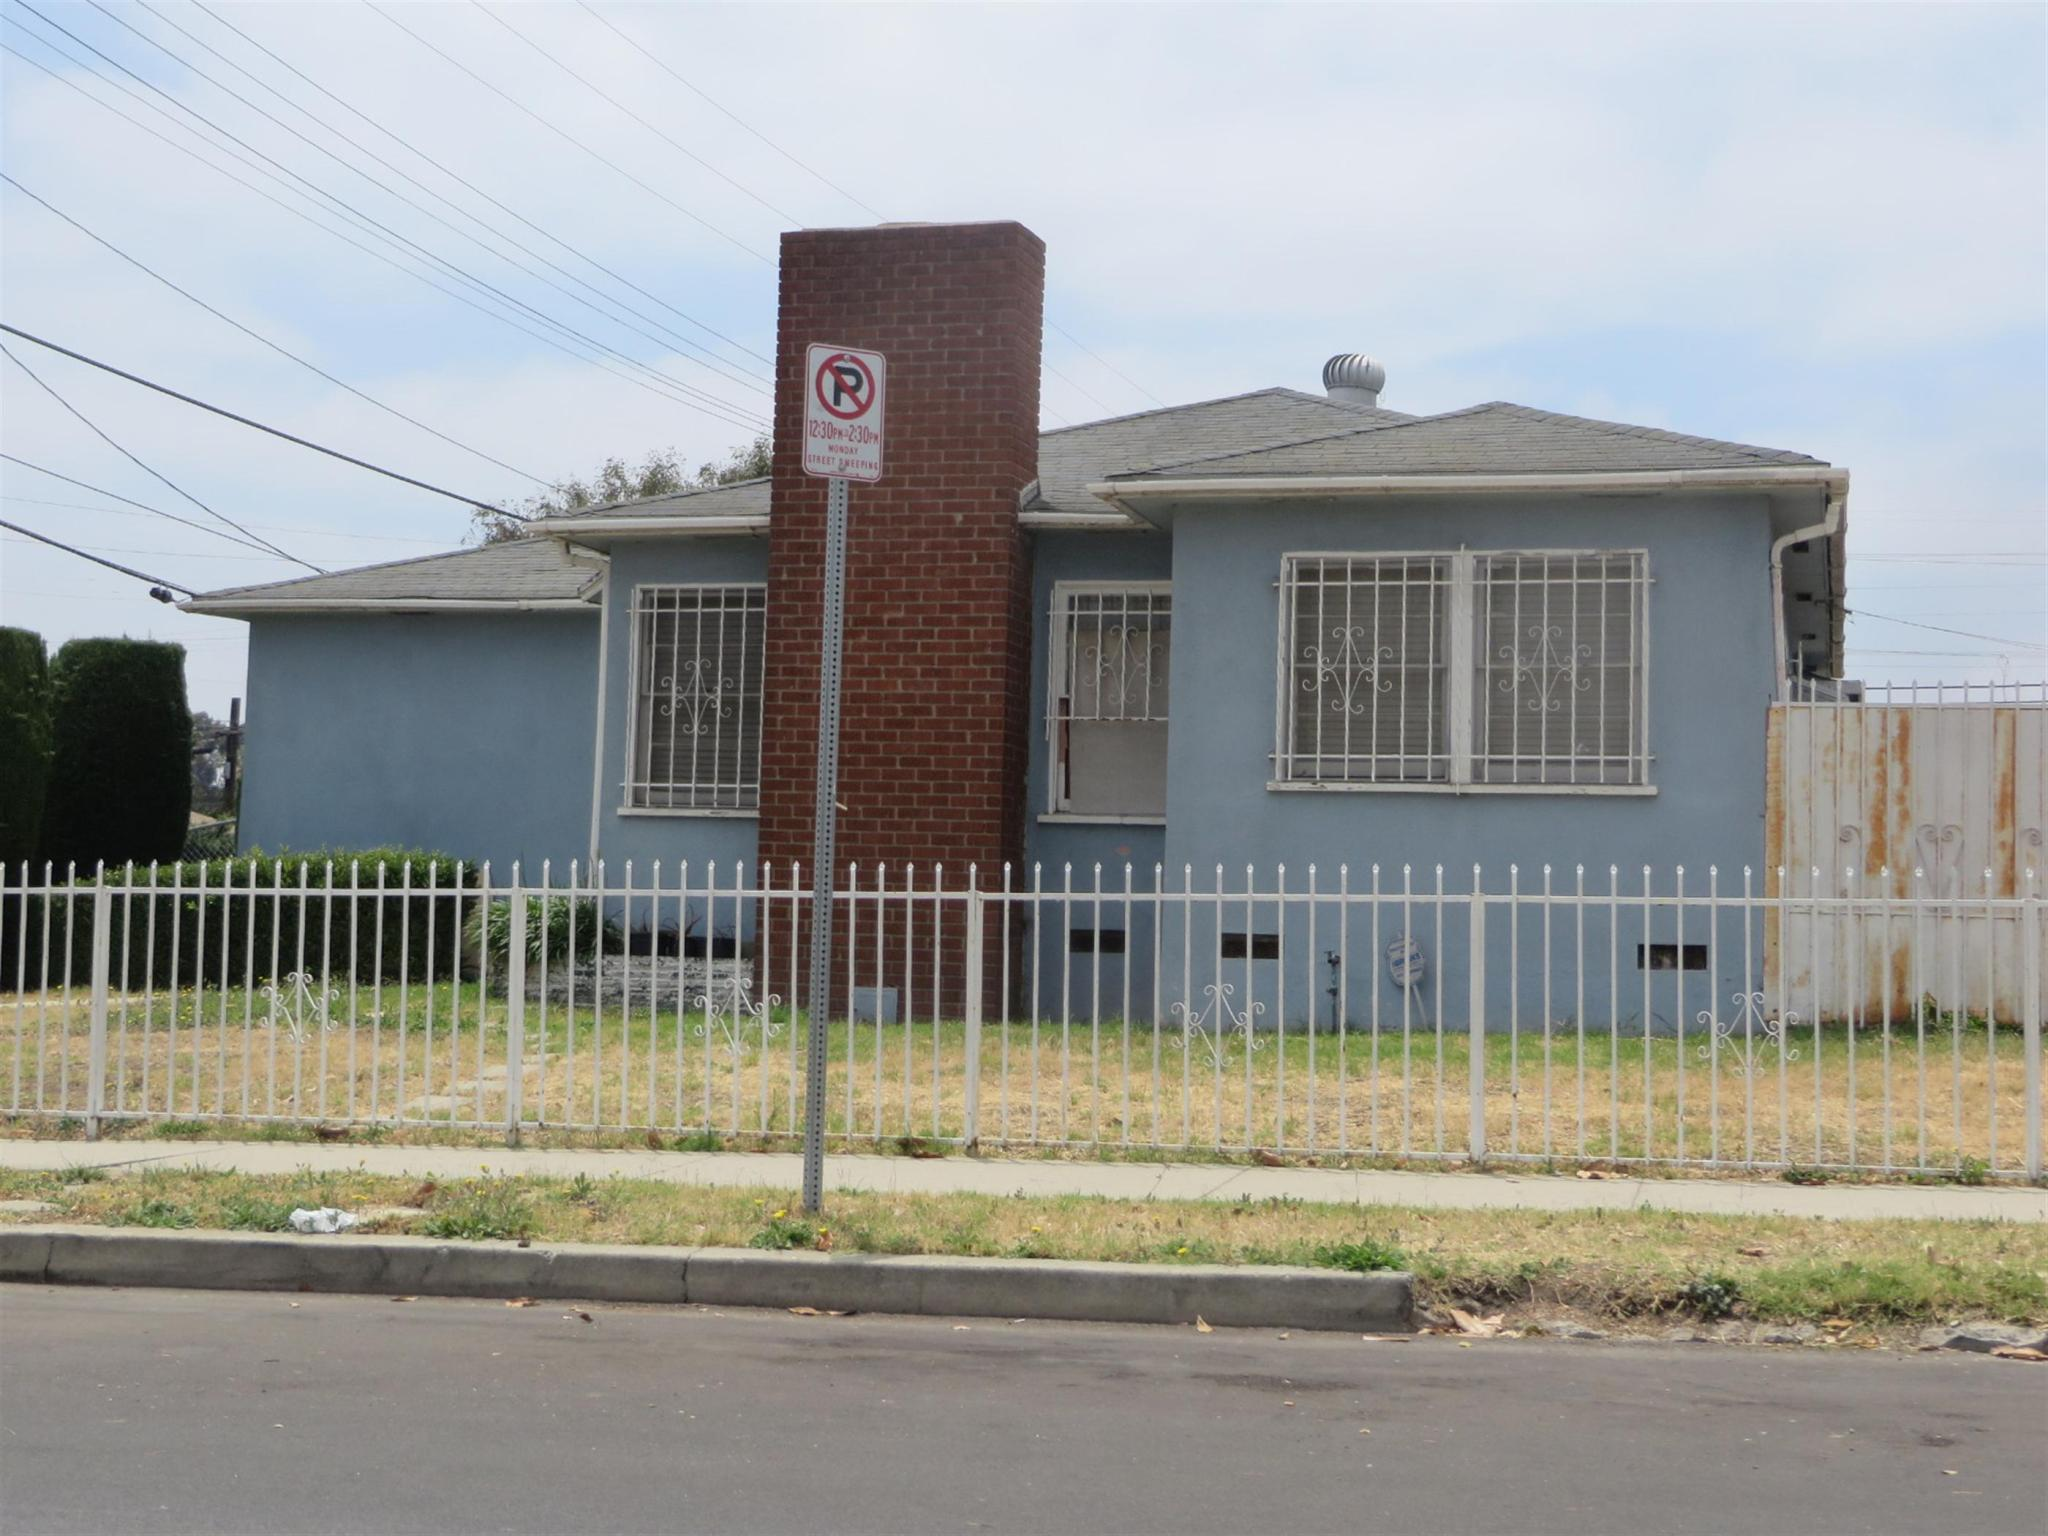 11301 s hoover st los angeles ca 90044 estimate and home details